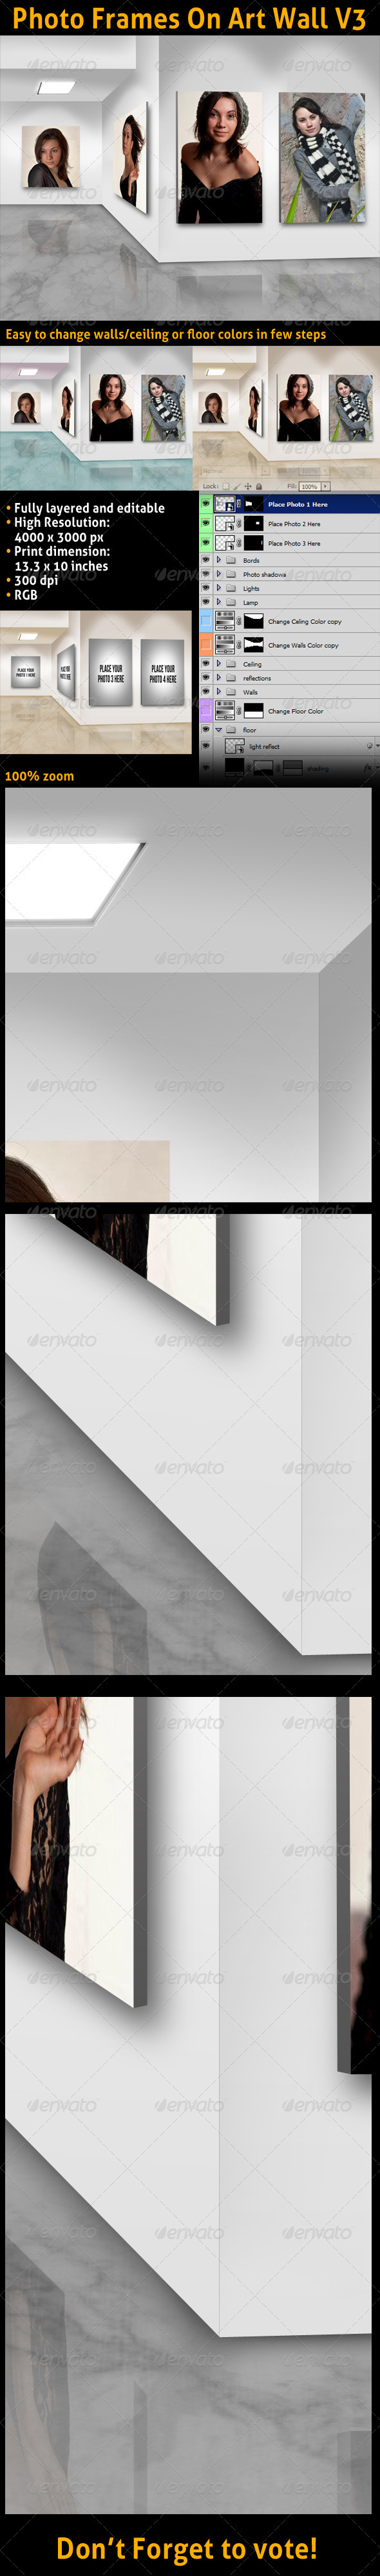 GraphicRiver Photo Frames On Art Wall V3 3399706